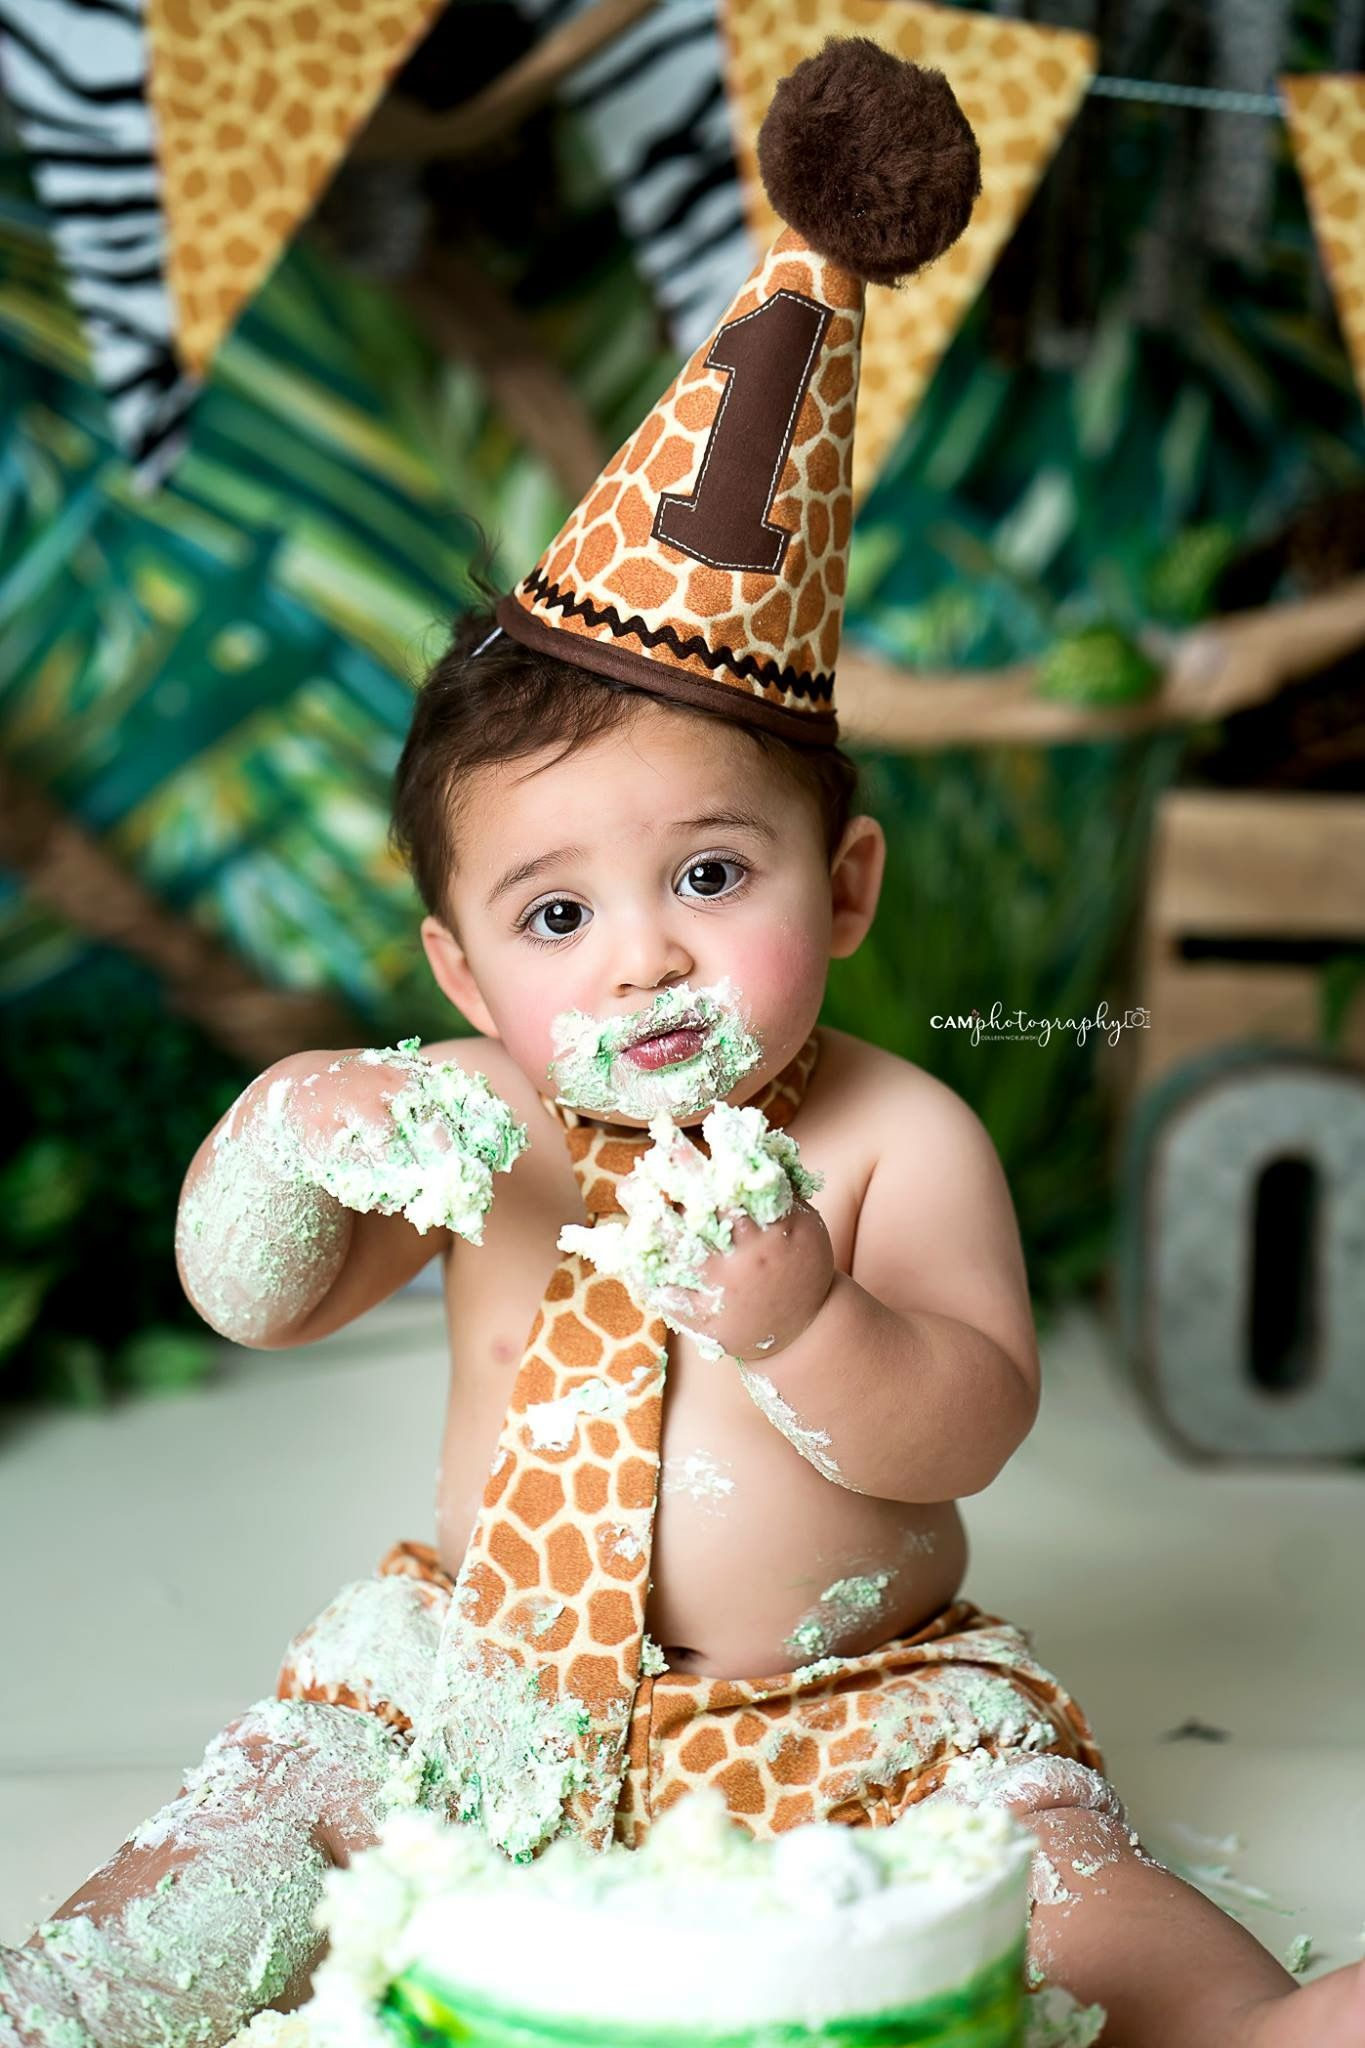 Animal print birthday theme cake smash smash cake smash session wild jungle theme safari theme photographer photography first birthday